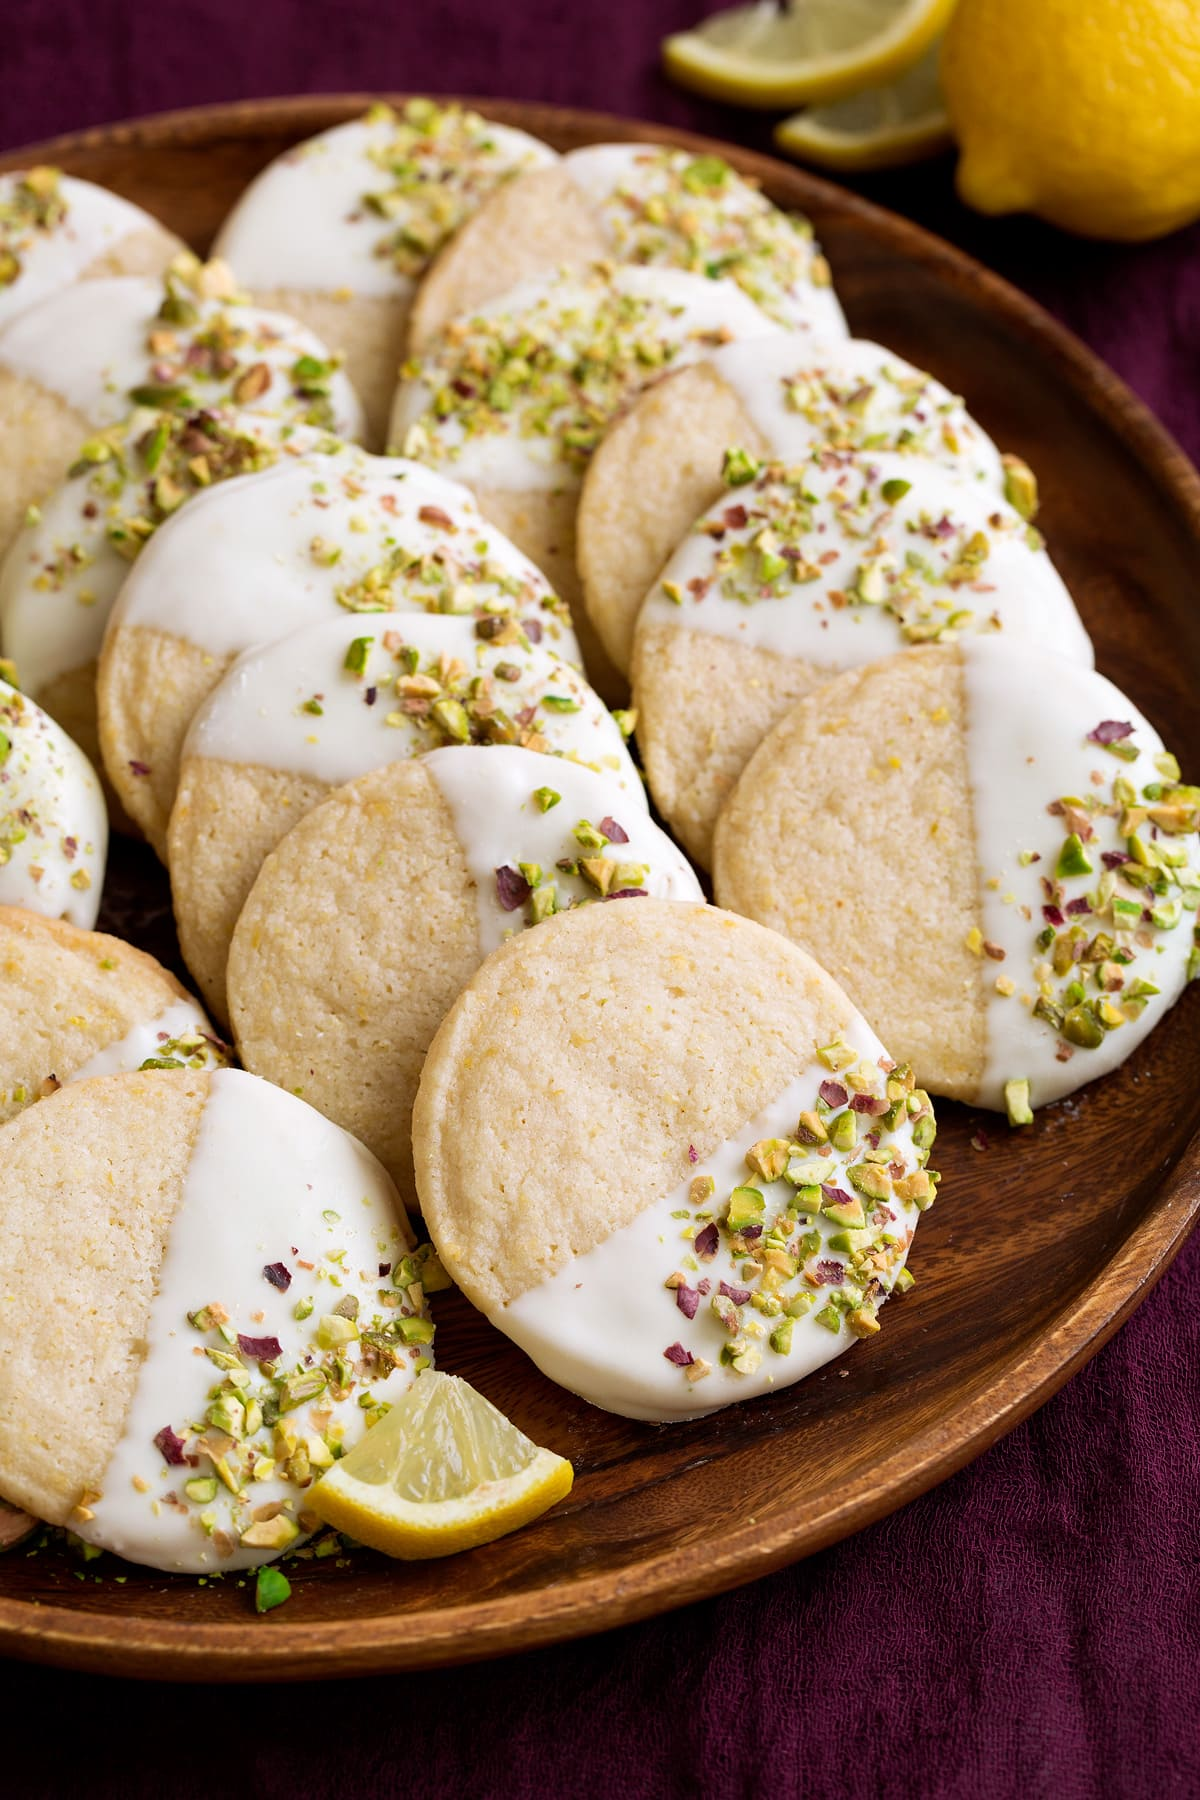 Shortbread cookies with lemon flavor that are dipped in white chocolate and sprinkled with pistachios. Shown here on a wooden serving plate.